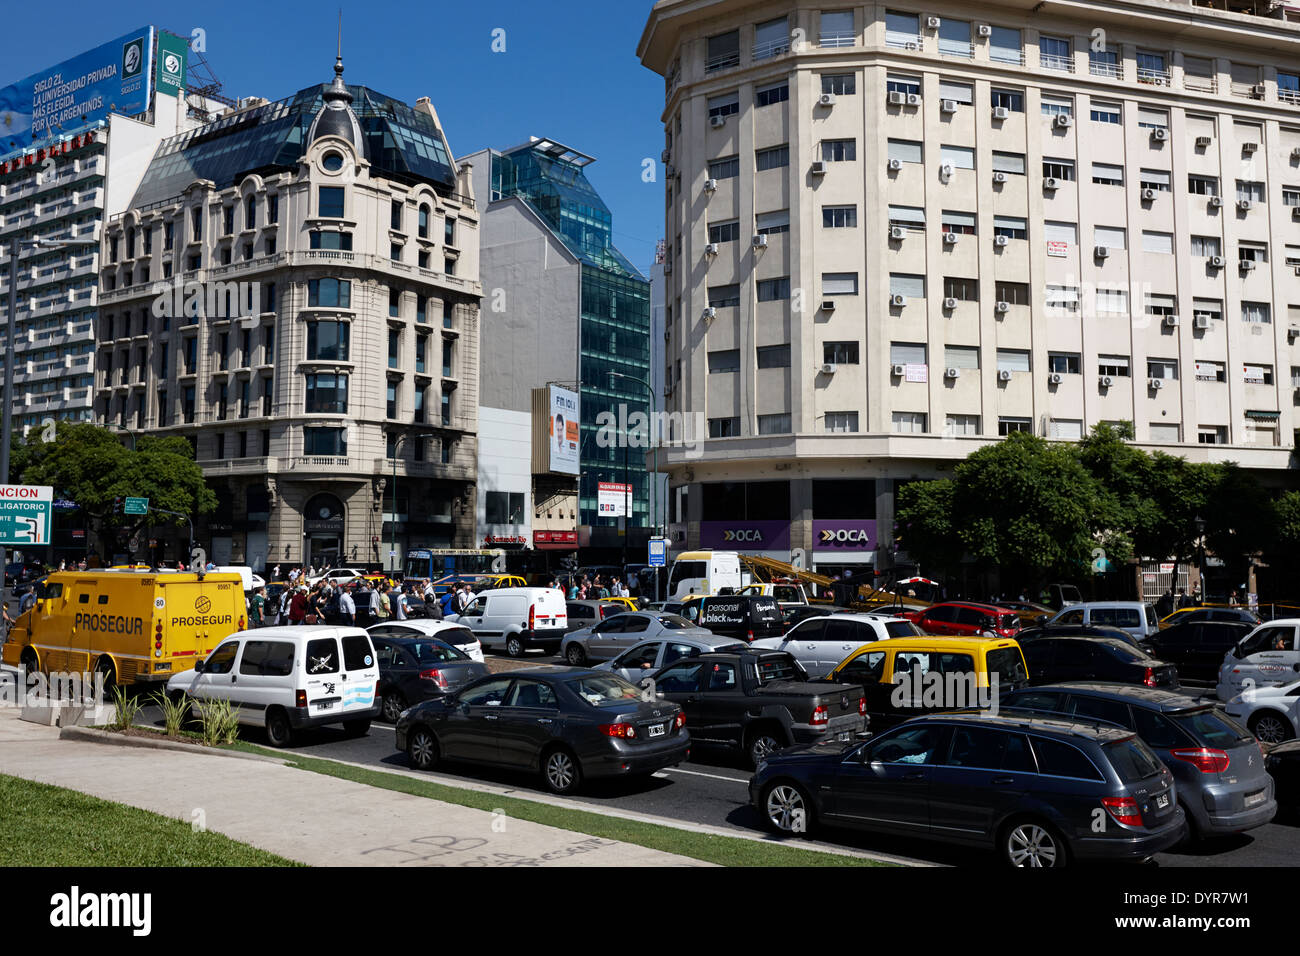 busy traffic on avenida 9 de julio Buenos Aires Argentina - Stock Image